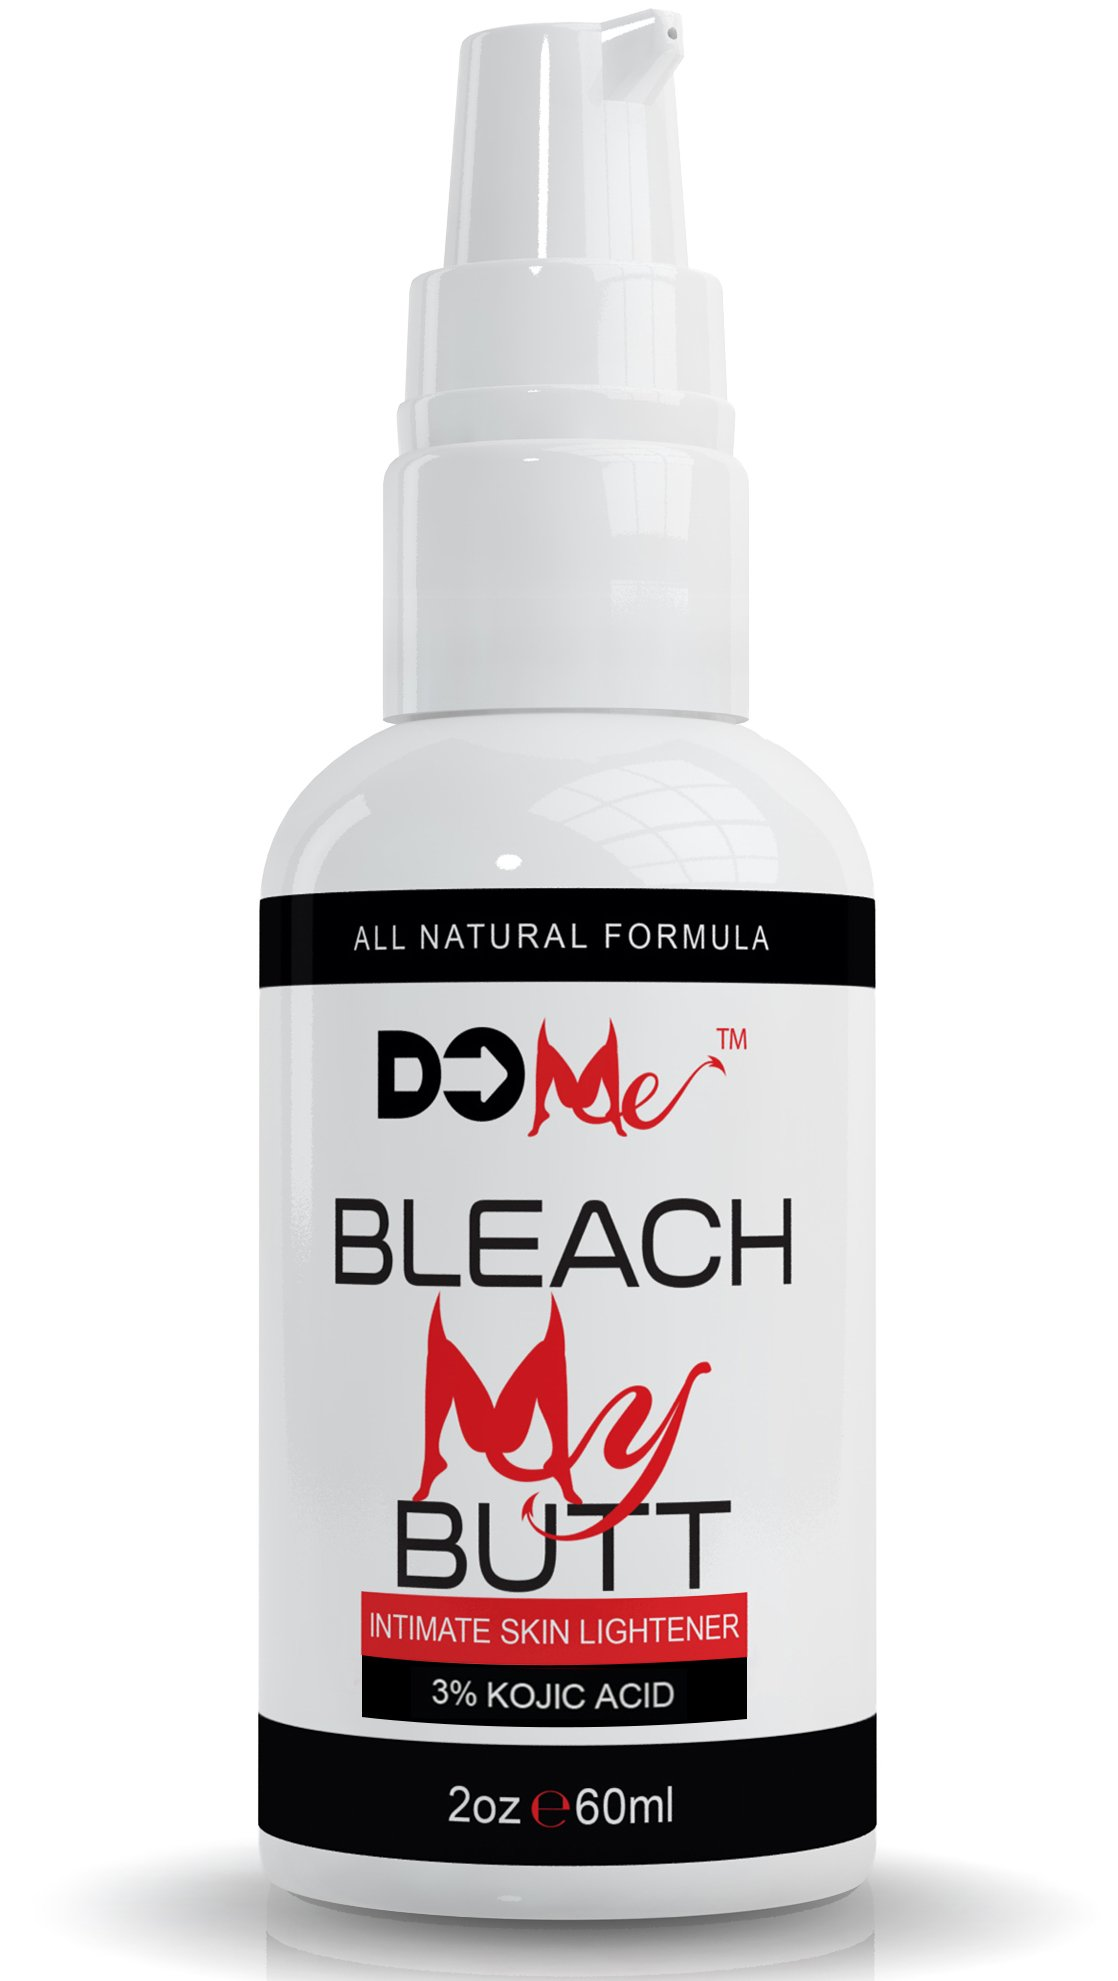 NEW! Premium Intimate Whitening Cream - Bleach My Butt - All Natural Formula to Pink Your Wink (2oz) by Do Me